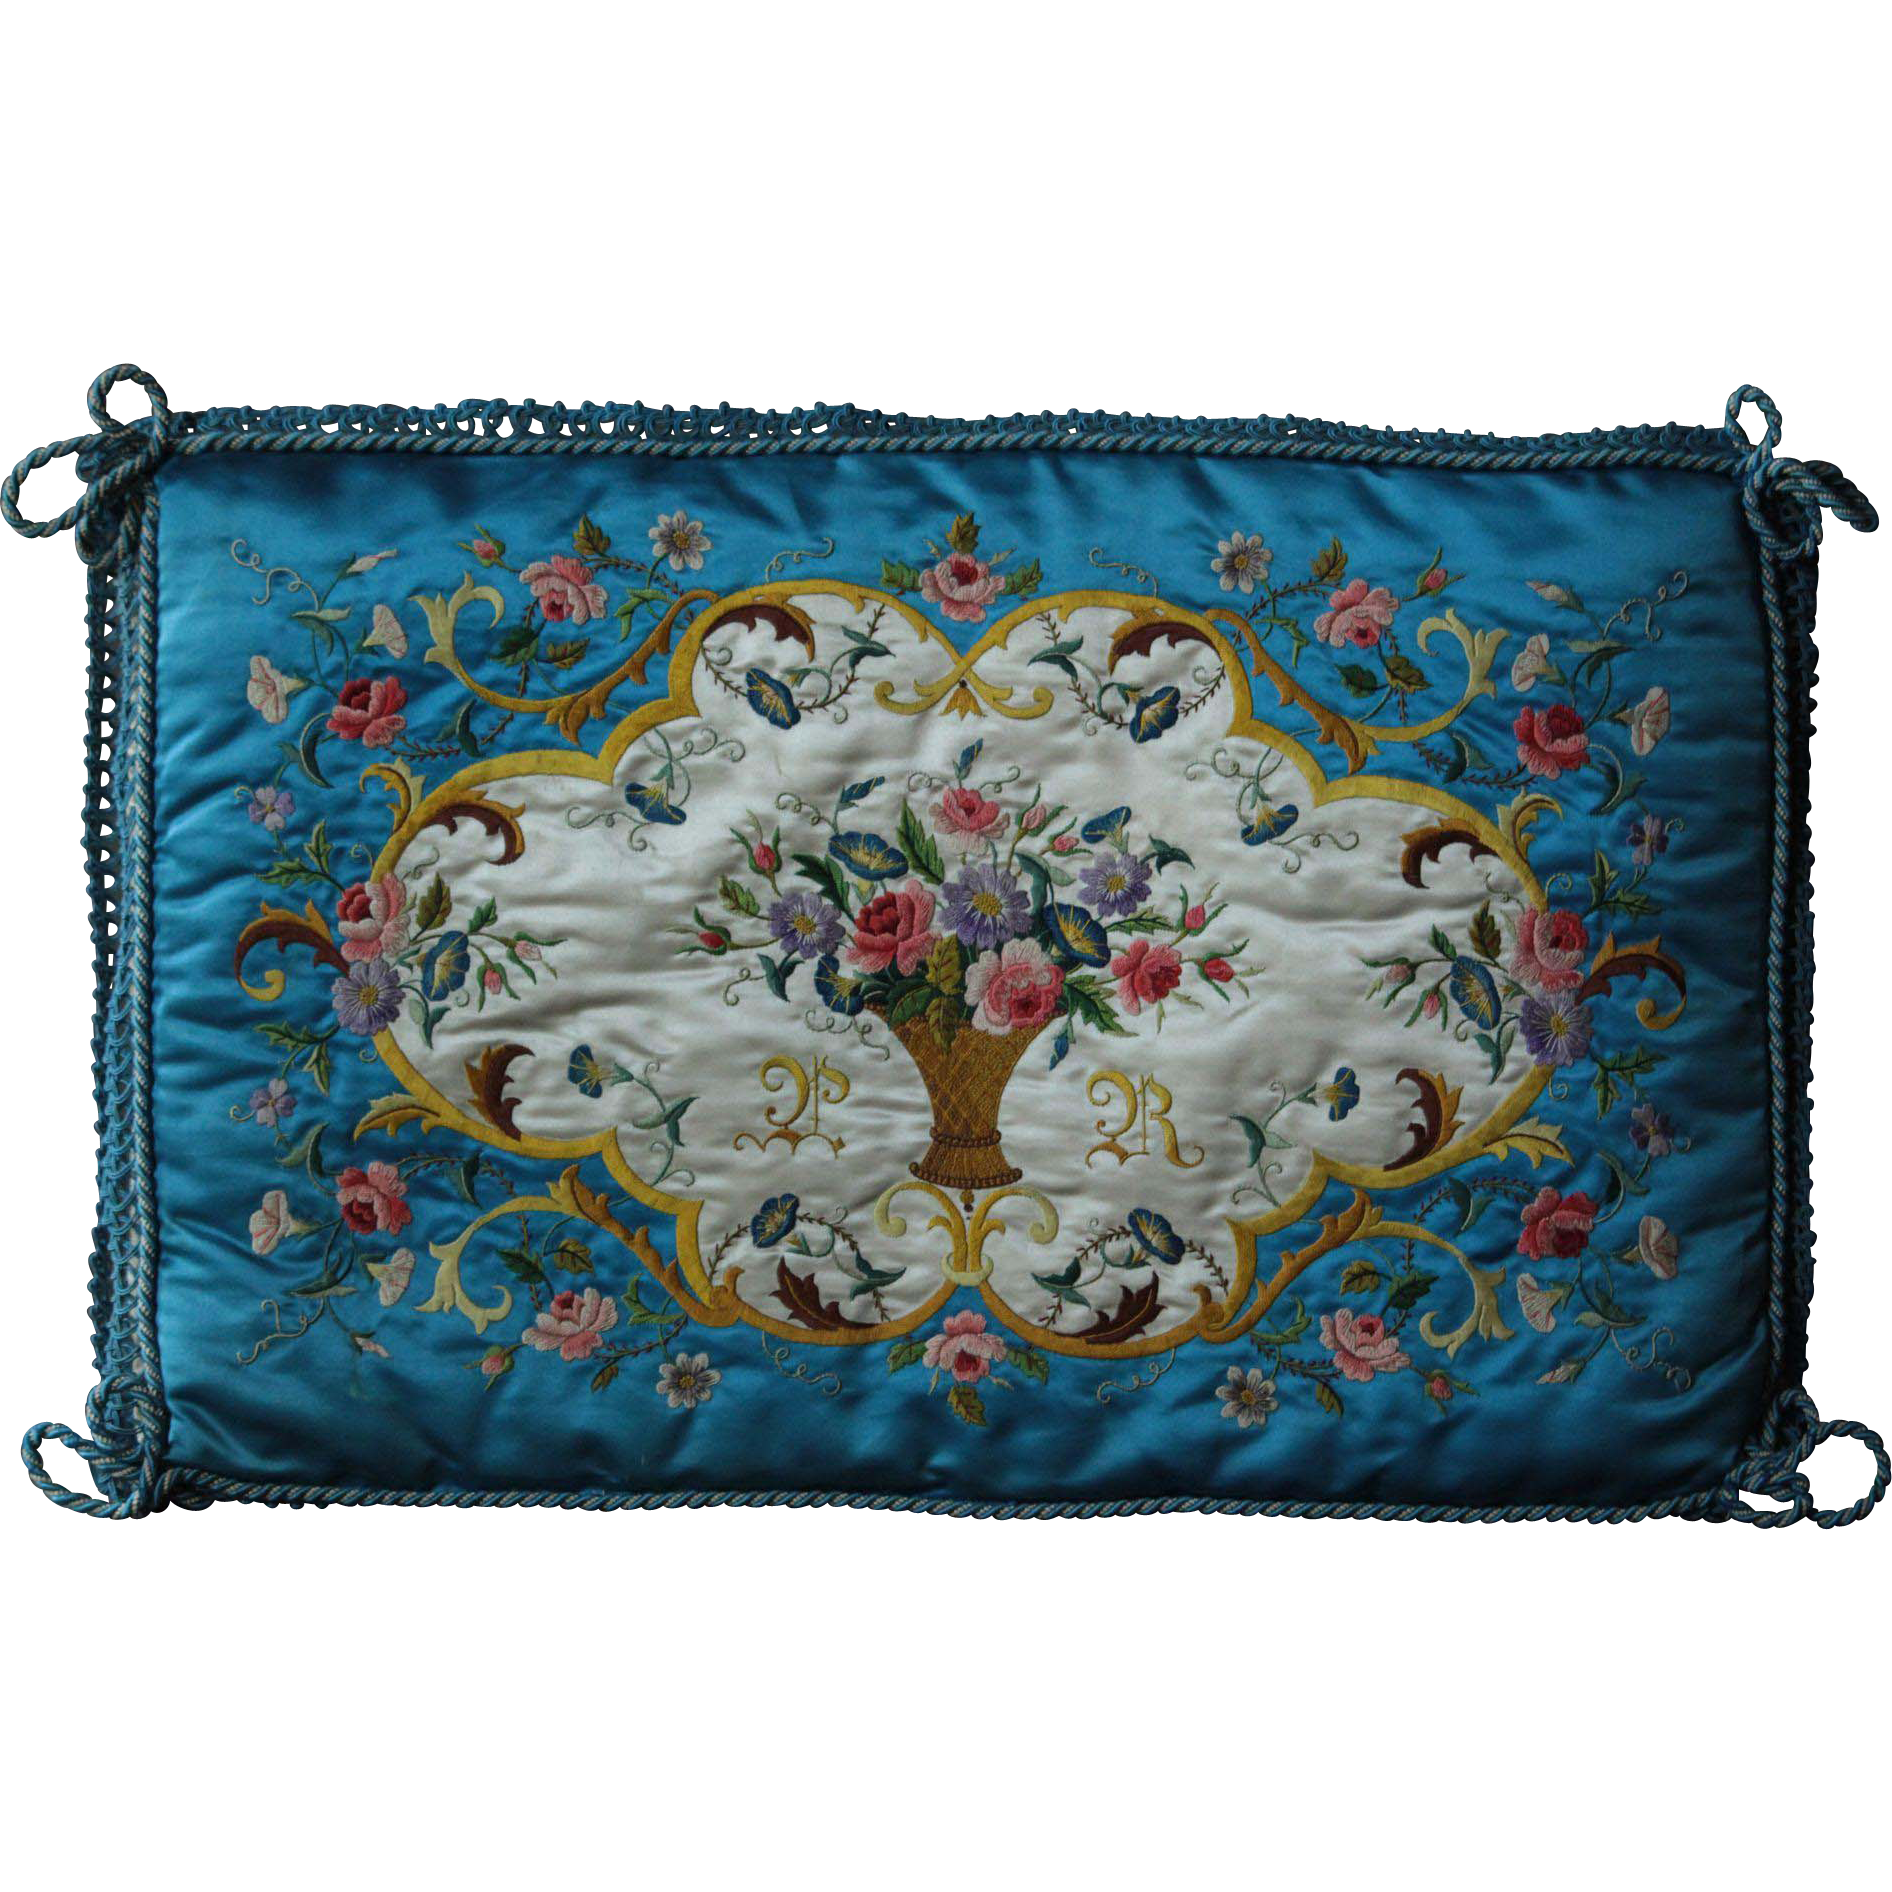 Antique French Embroidered Silk Lingerie Case / Cover